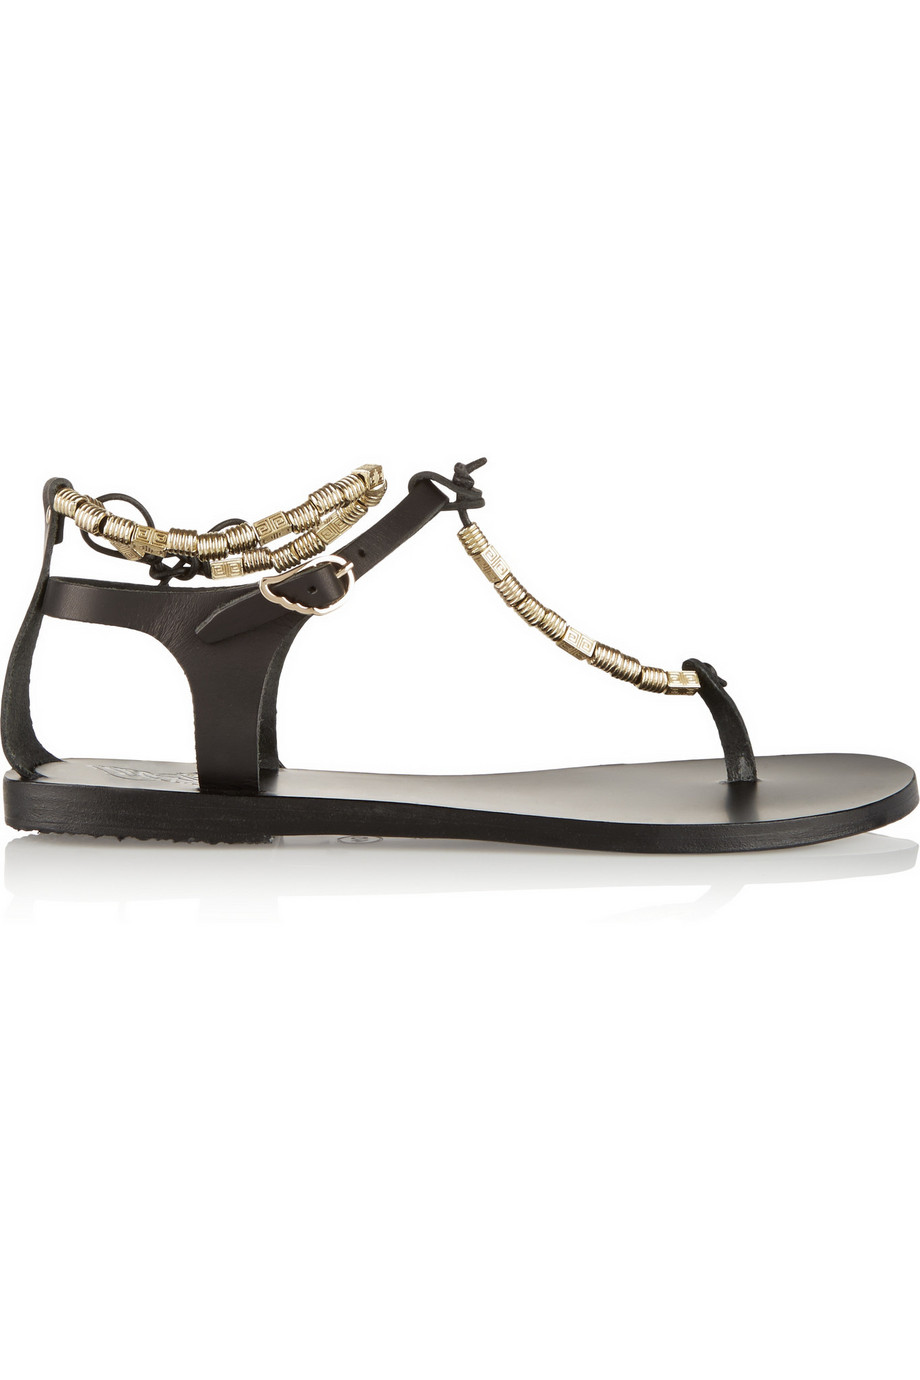 Chrysso Beaded Leather Sandals, Ancient Greek Sandals, Black, Women's US Size: 4.5, Size: 35